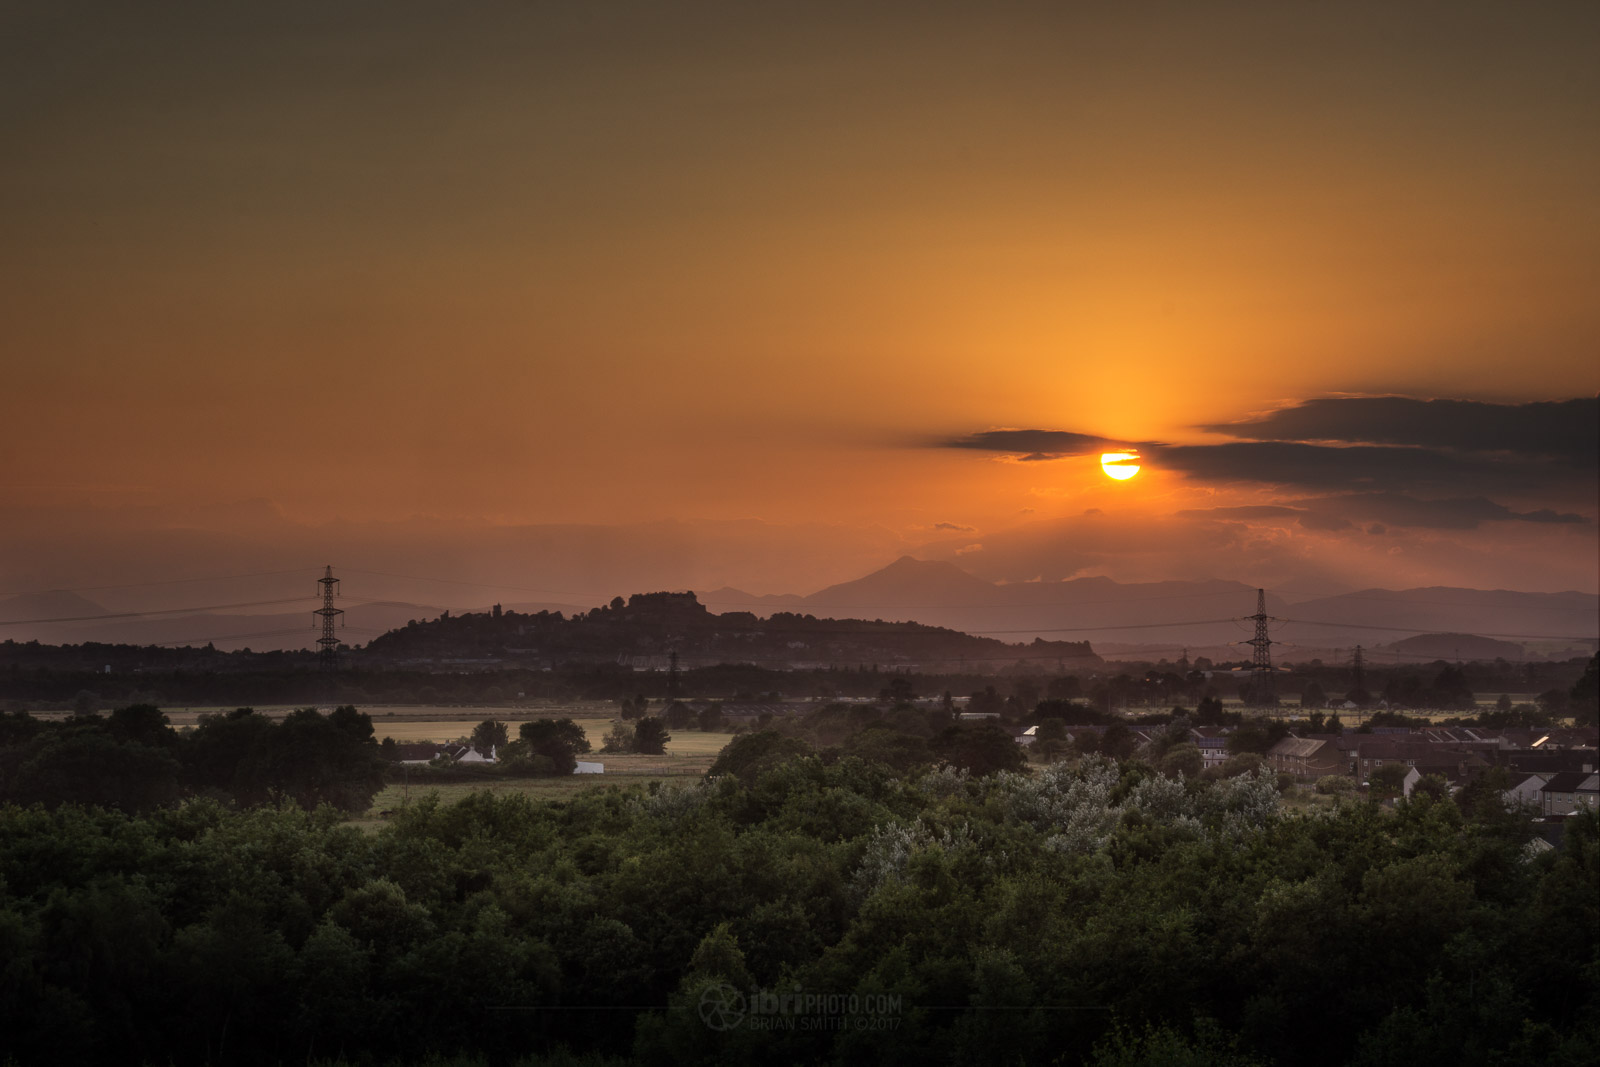 This image of the sun setting over Stirling is a composite of 3 differently exposed photographs.